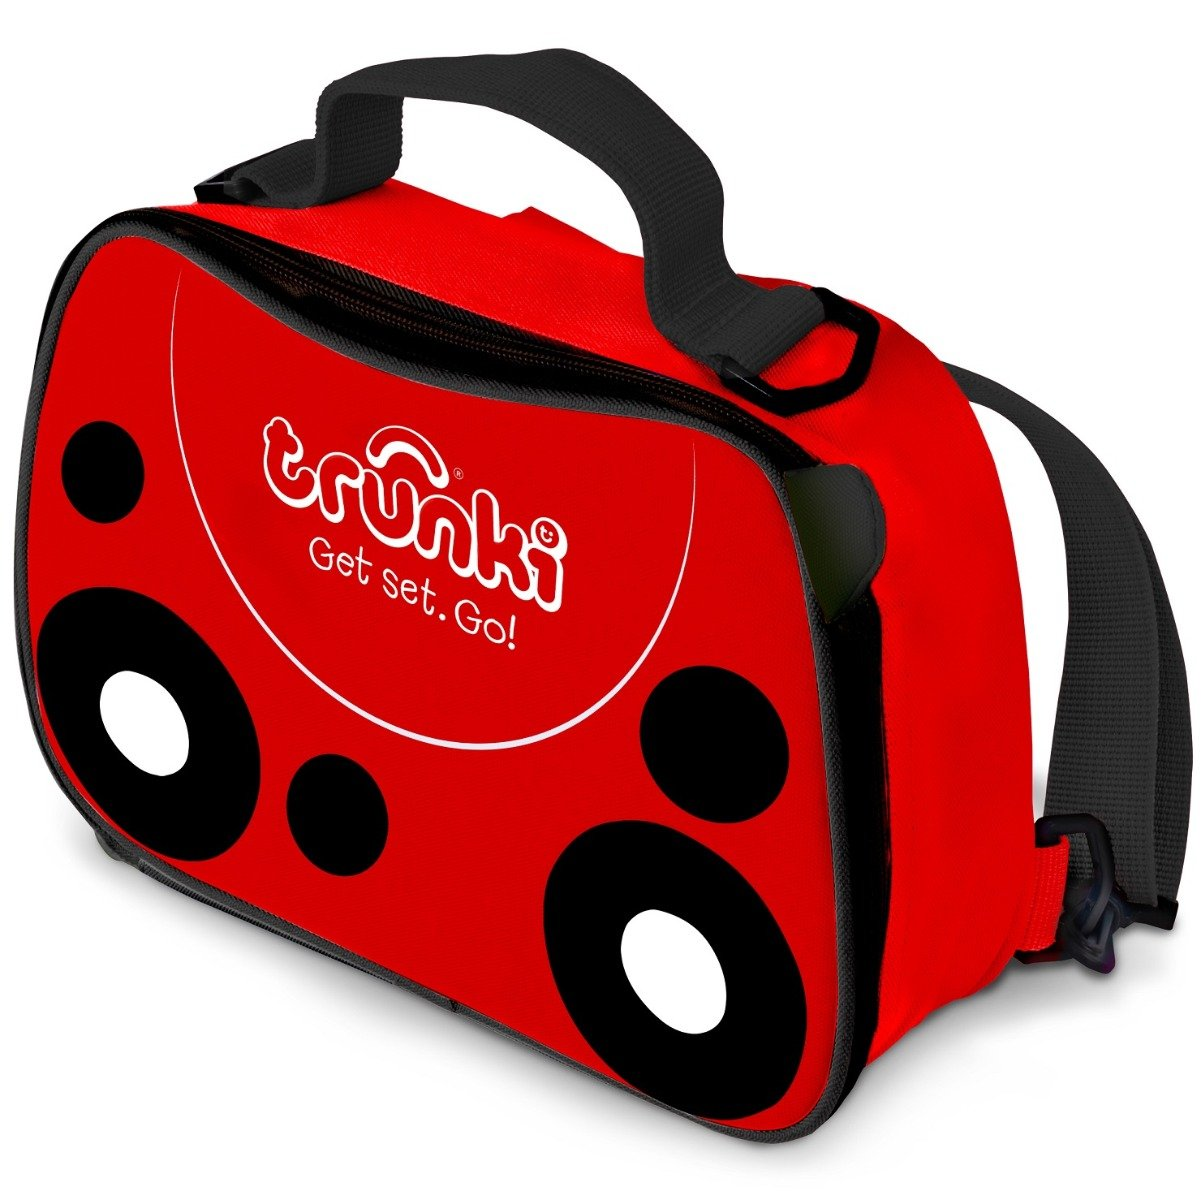 Geanta Lunch Bag Ladybird Trunki, Rosu